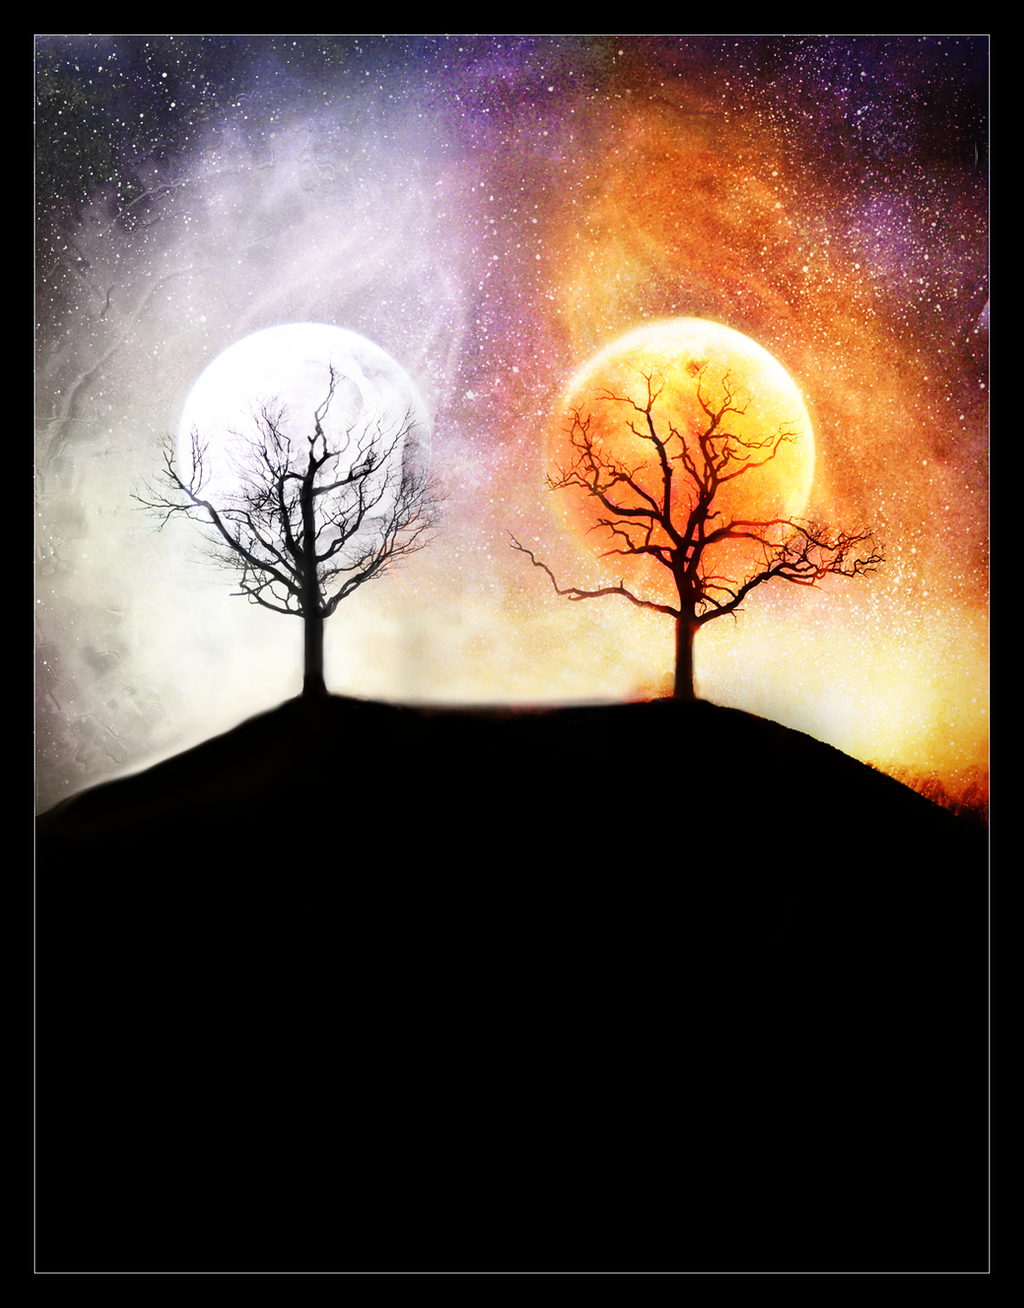 paintings of two moons - photo #11